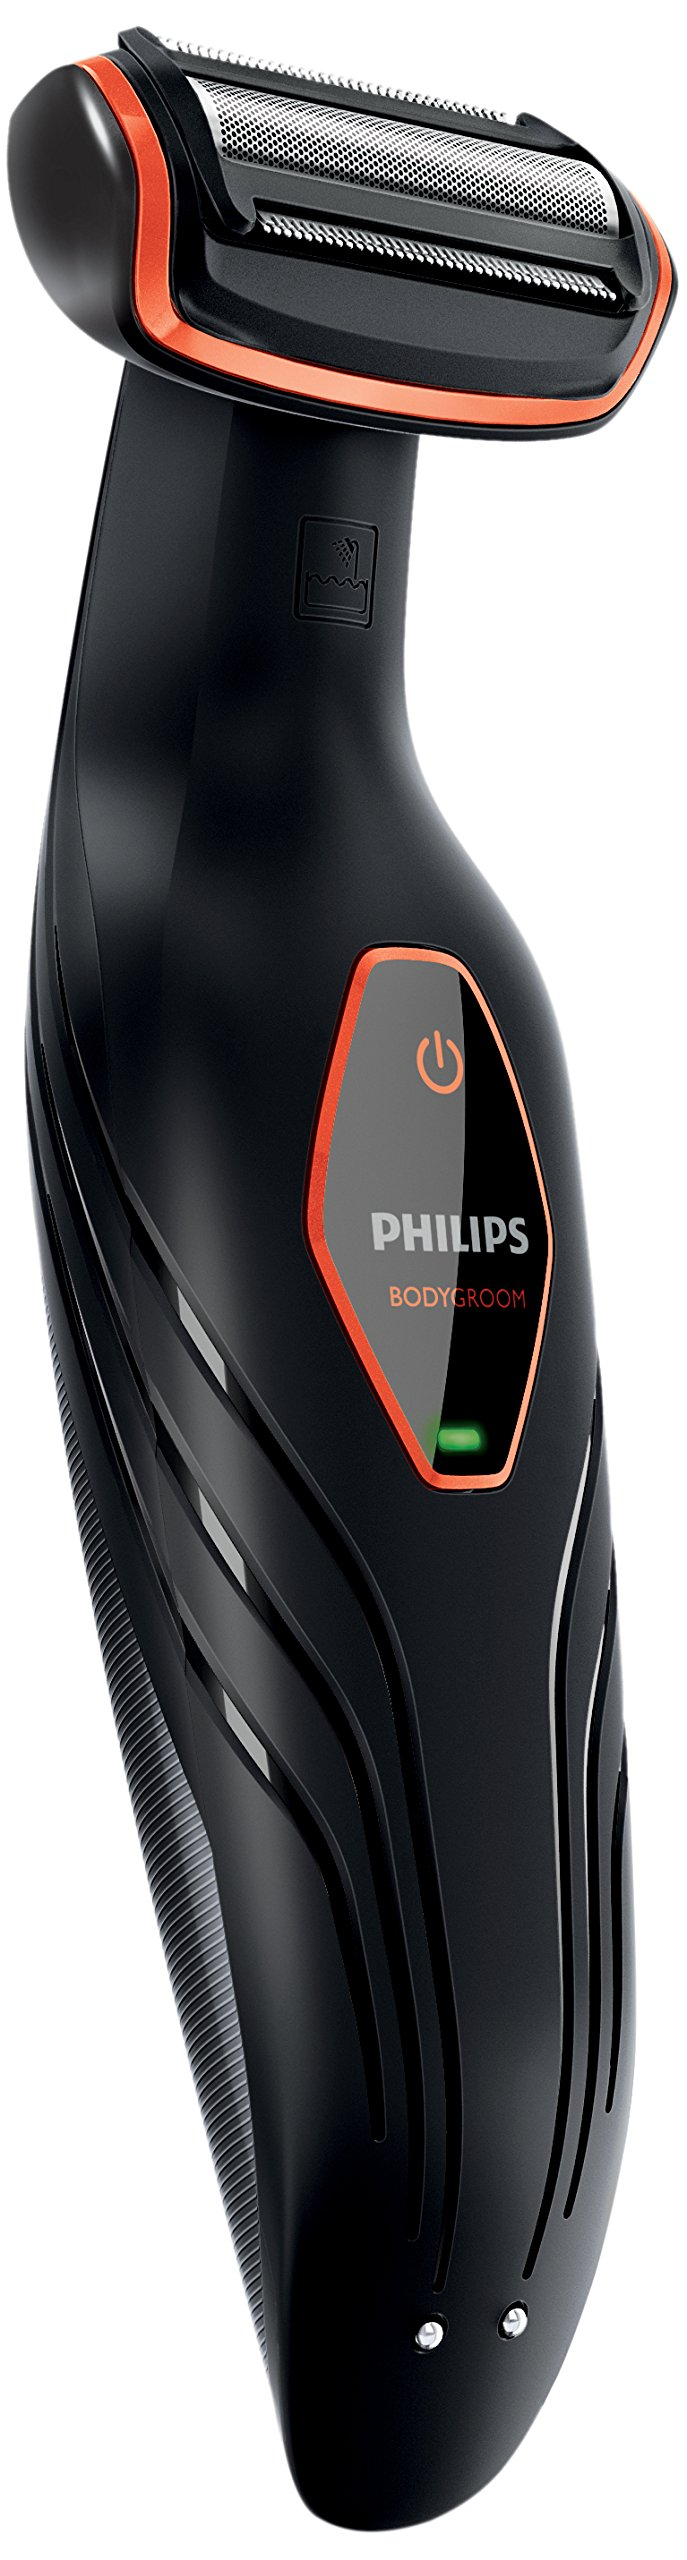 Philips BG2024/15 Body Groom Shaver by Philips (Image #1)